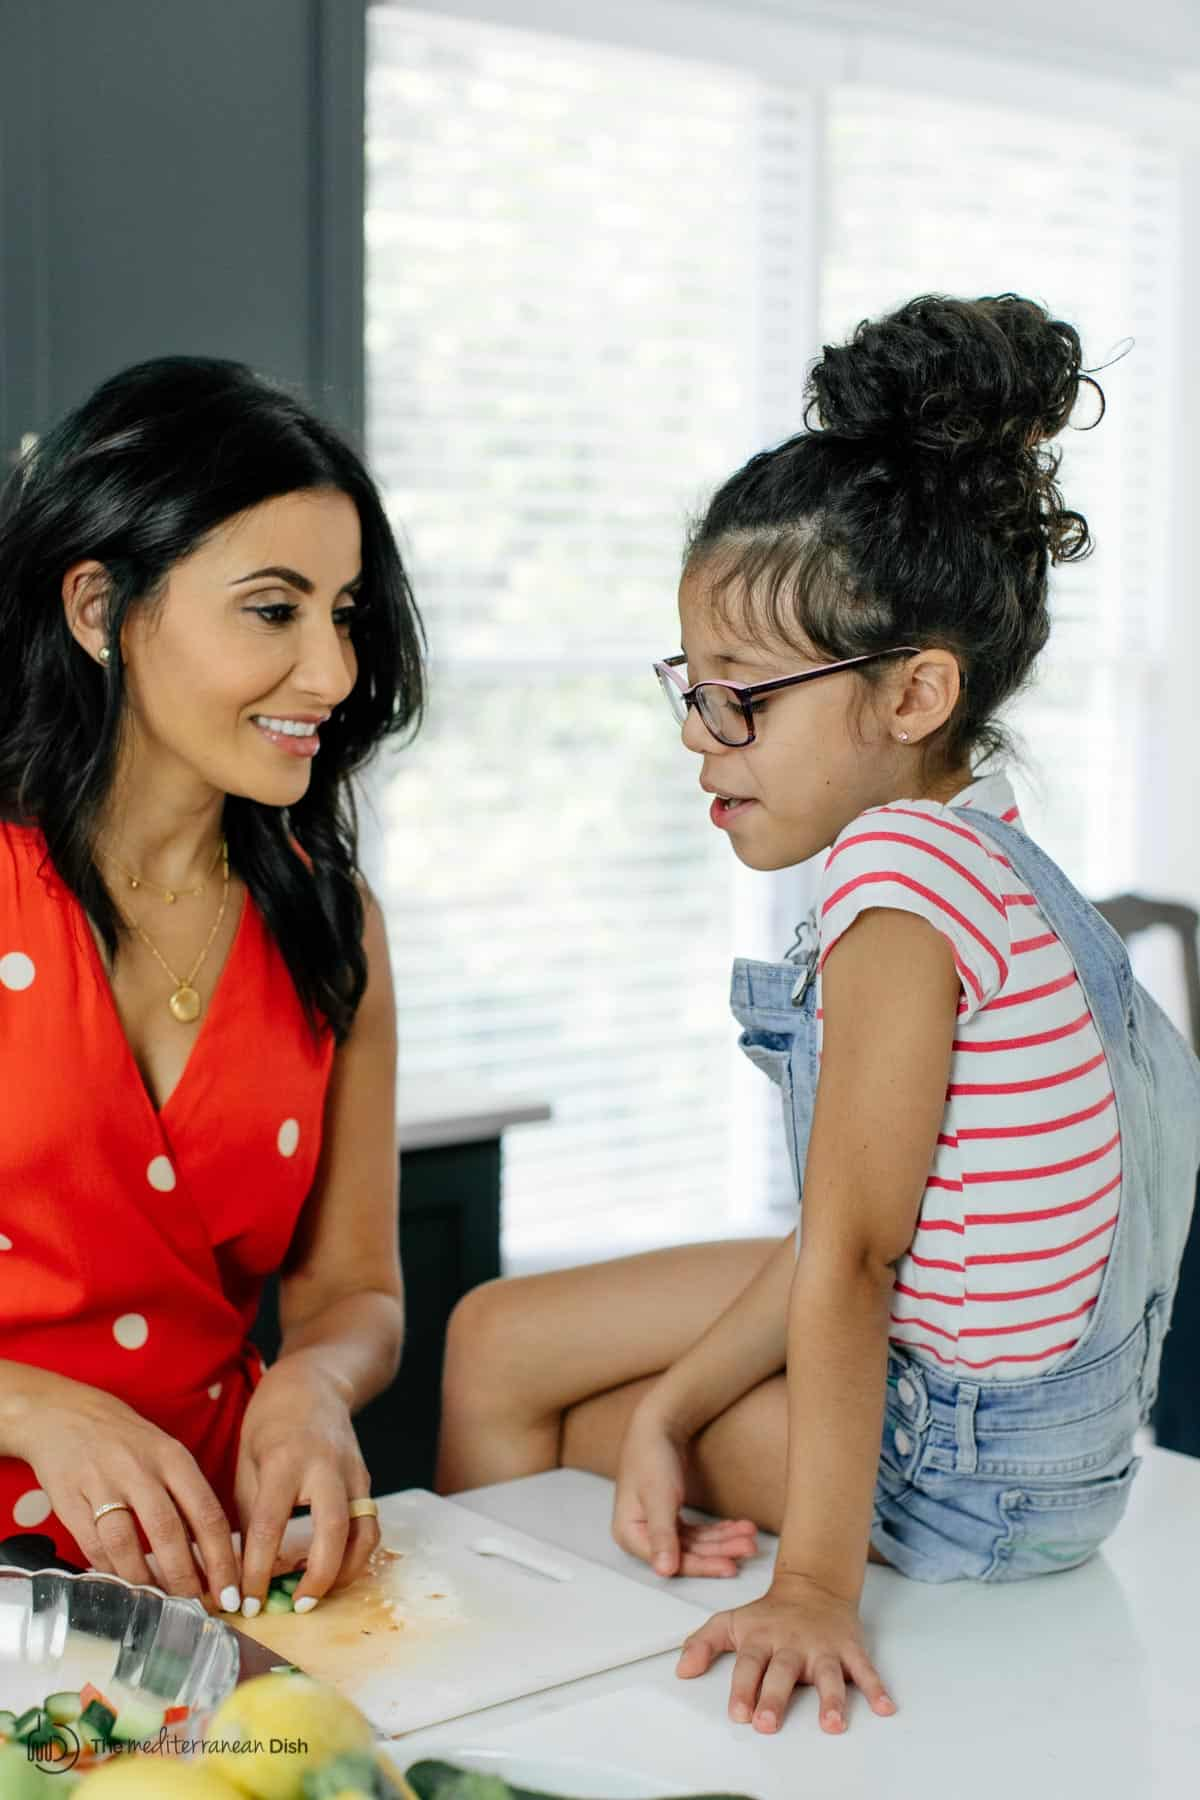 Suzy Karadsheh of The Mediterranean Dish with her daughter in the kitchen